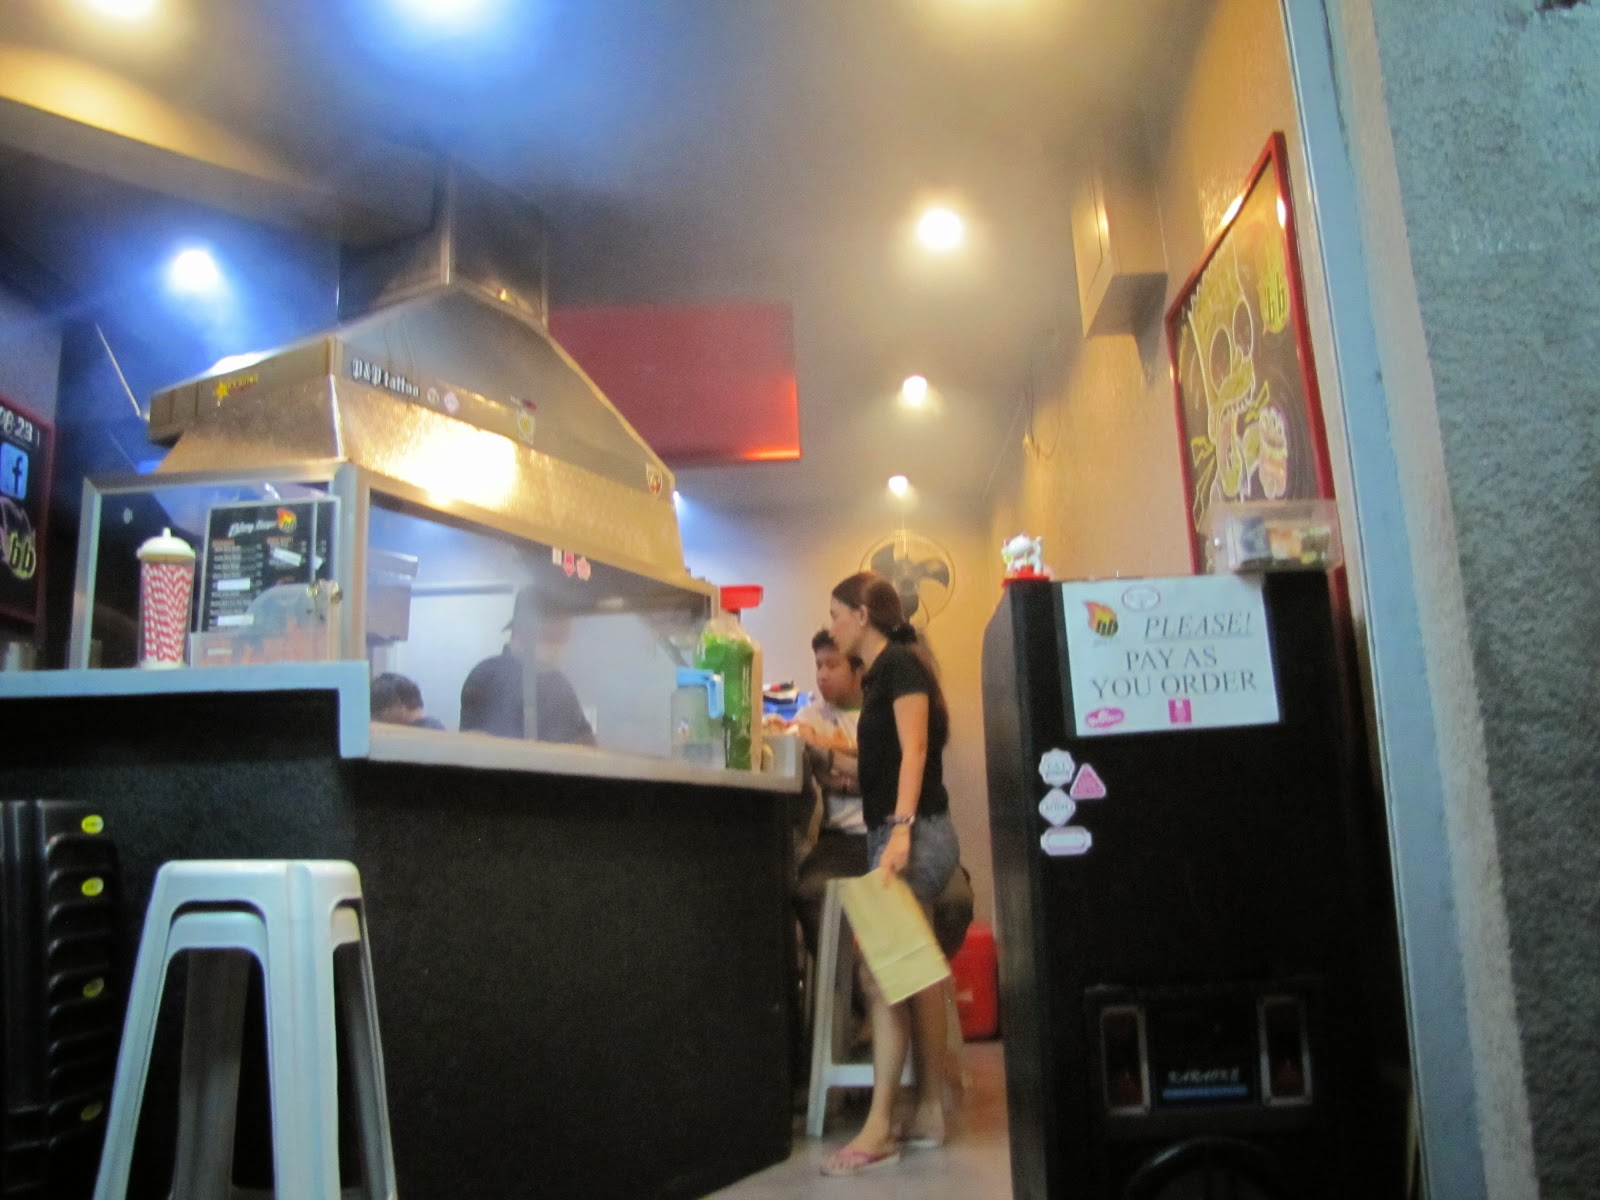 FTW! Blog, Blazing Burger, #eatdrinkManila, #FTWeats, #holeinthewall